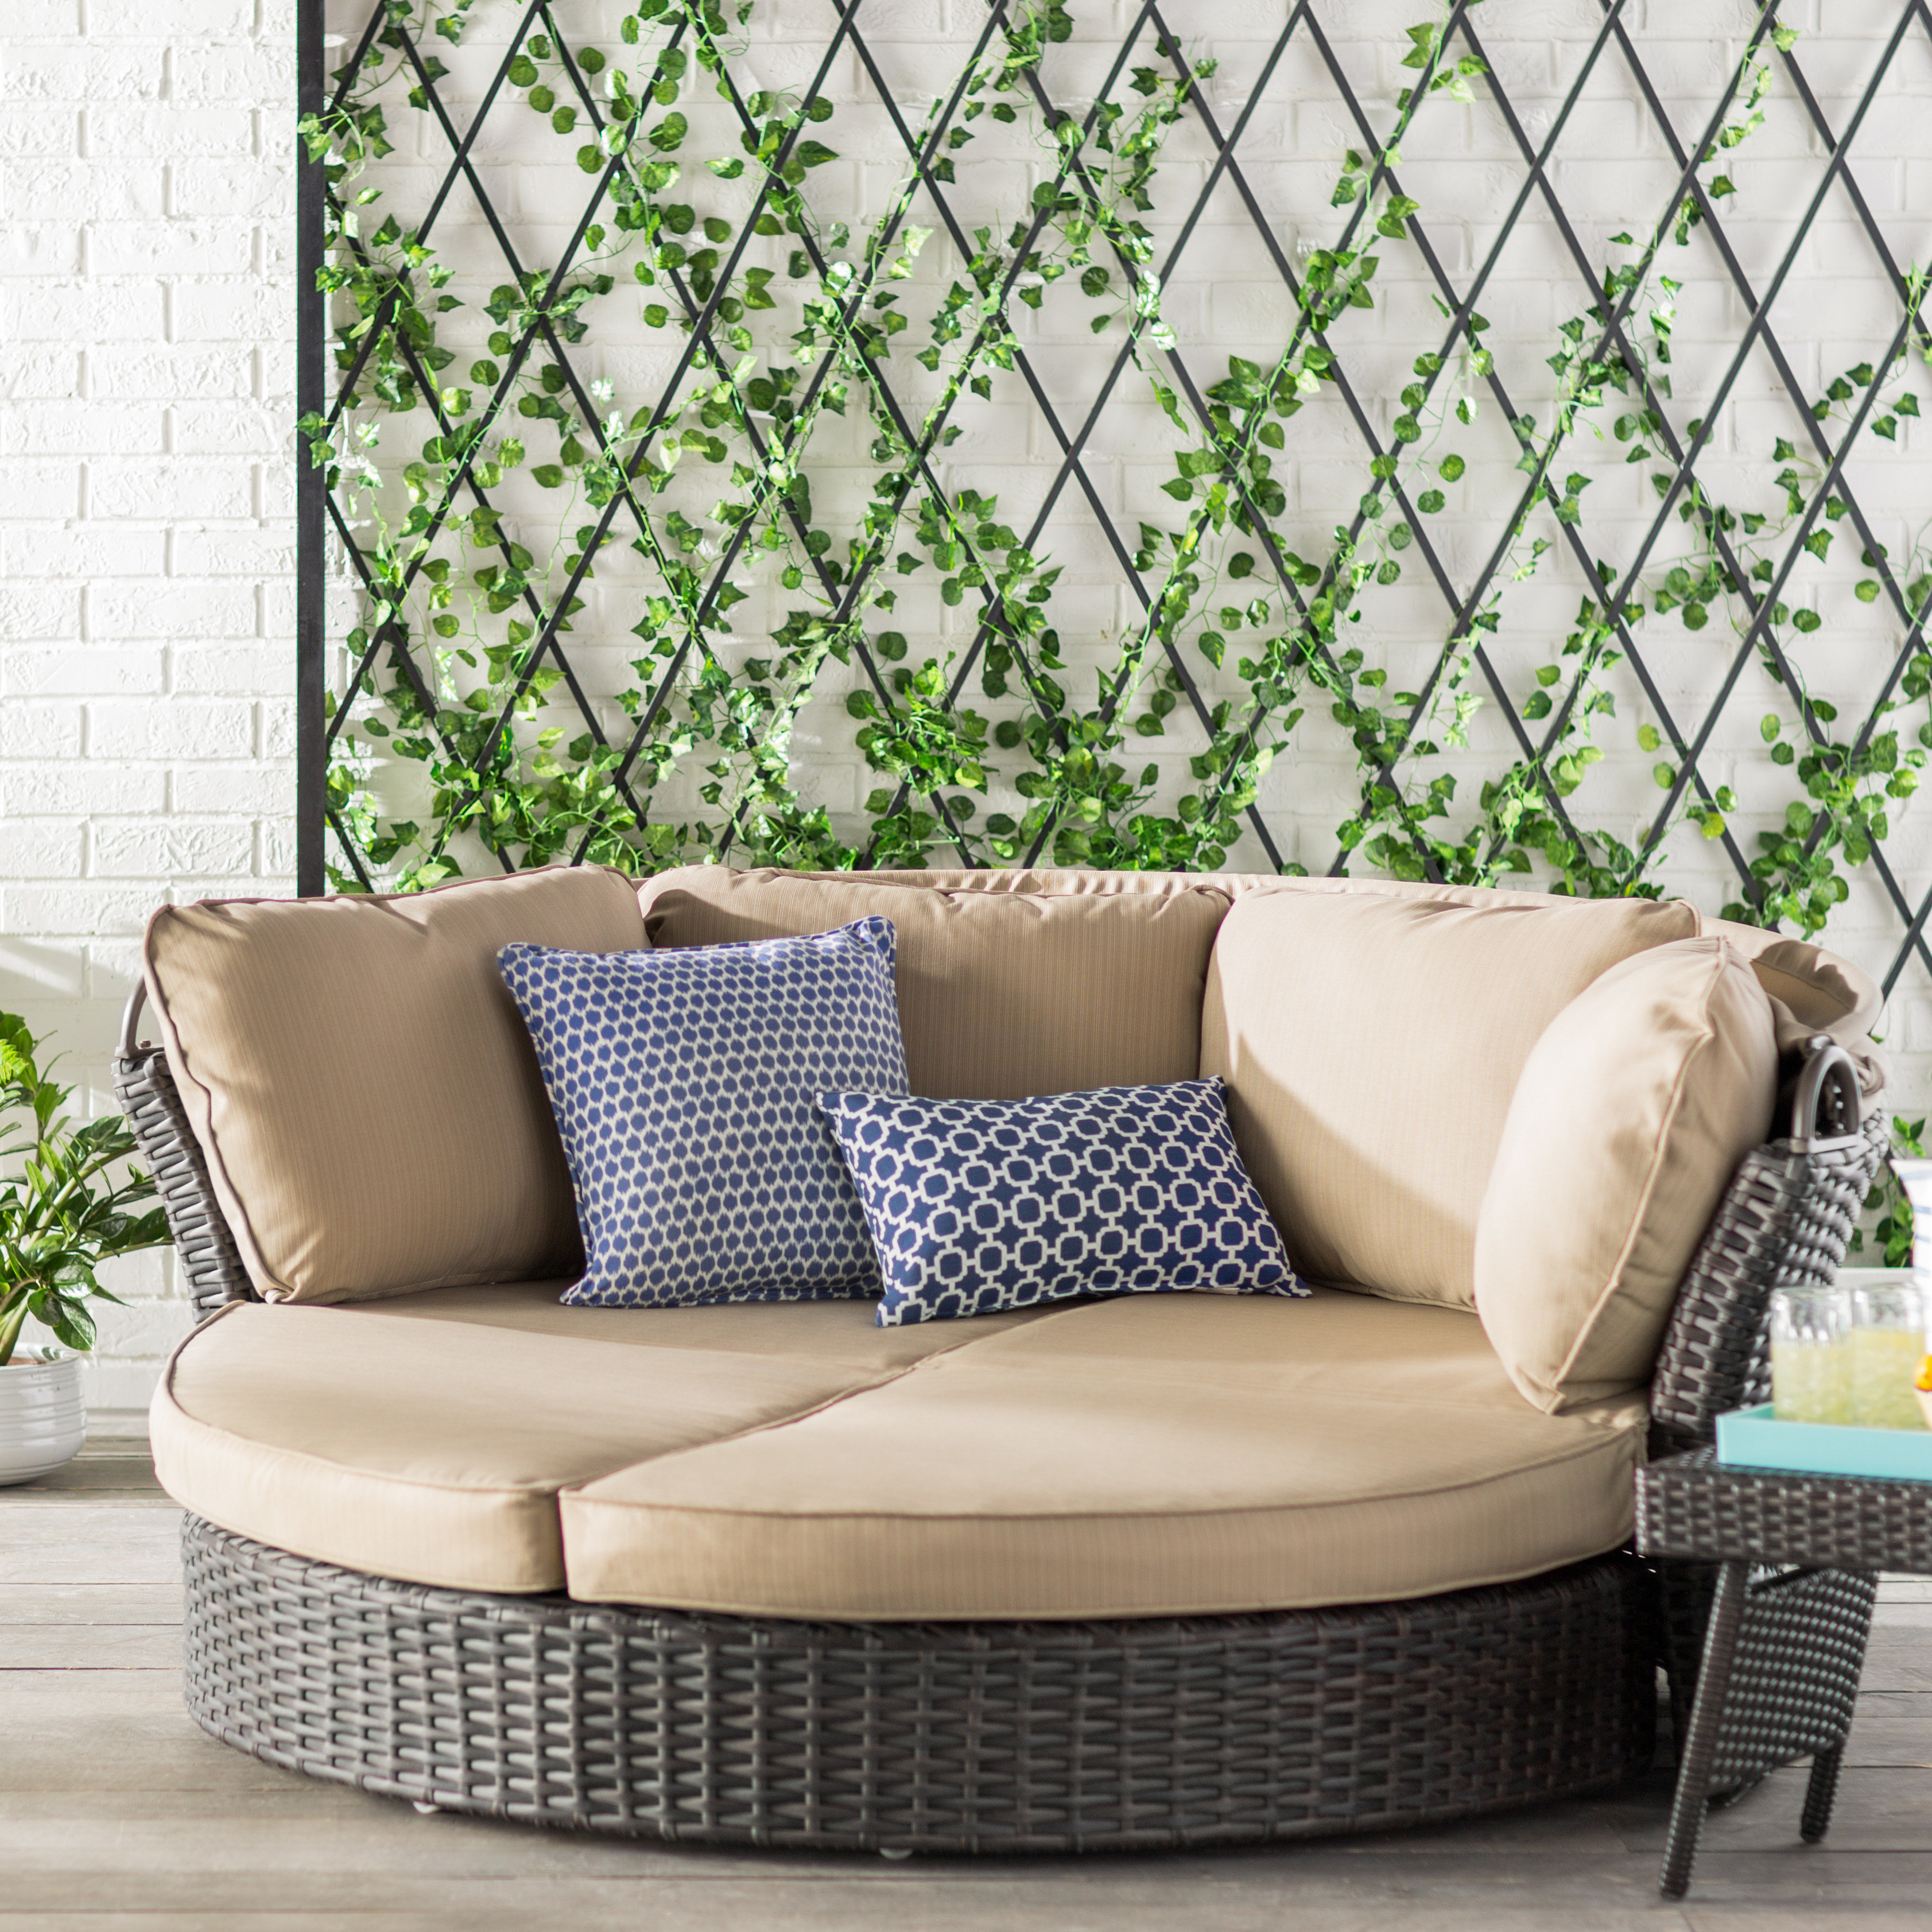 Tiana Patio Daybed With Cushions In Trendy Patio Daybeds With Cushions (View 14 of 20)